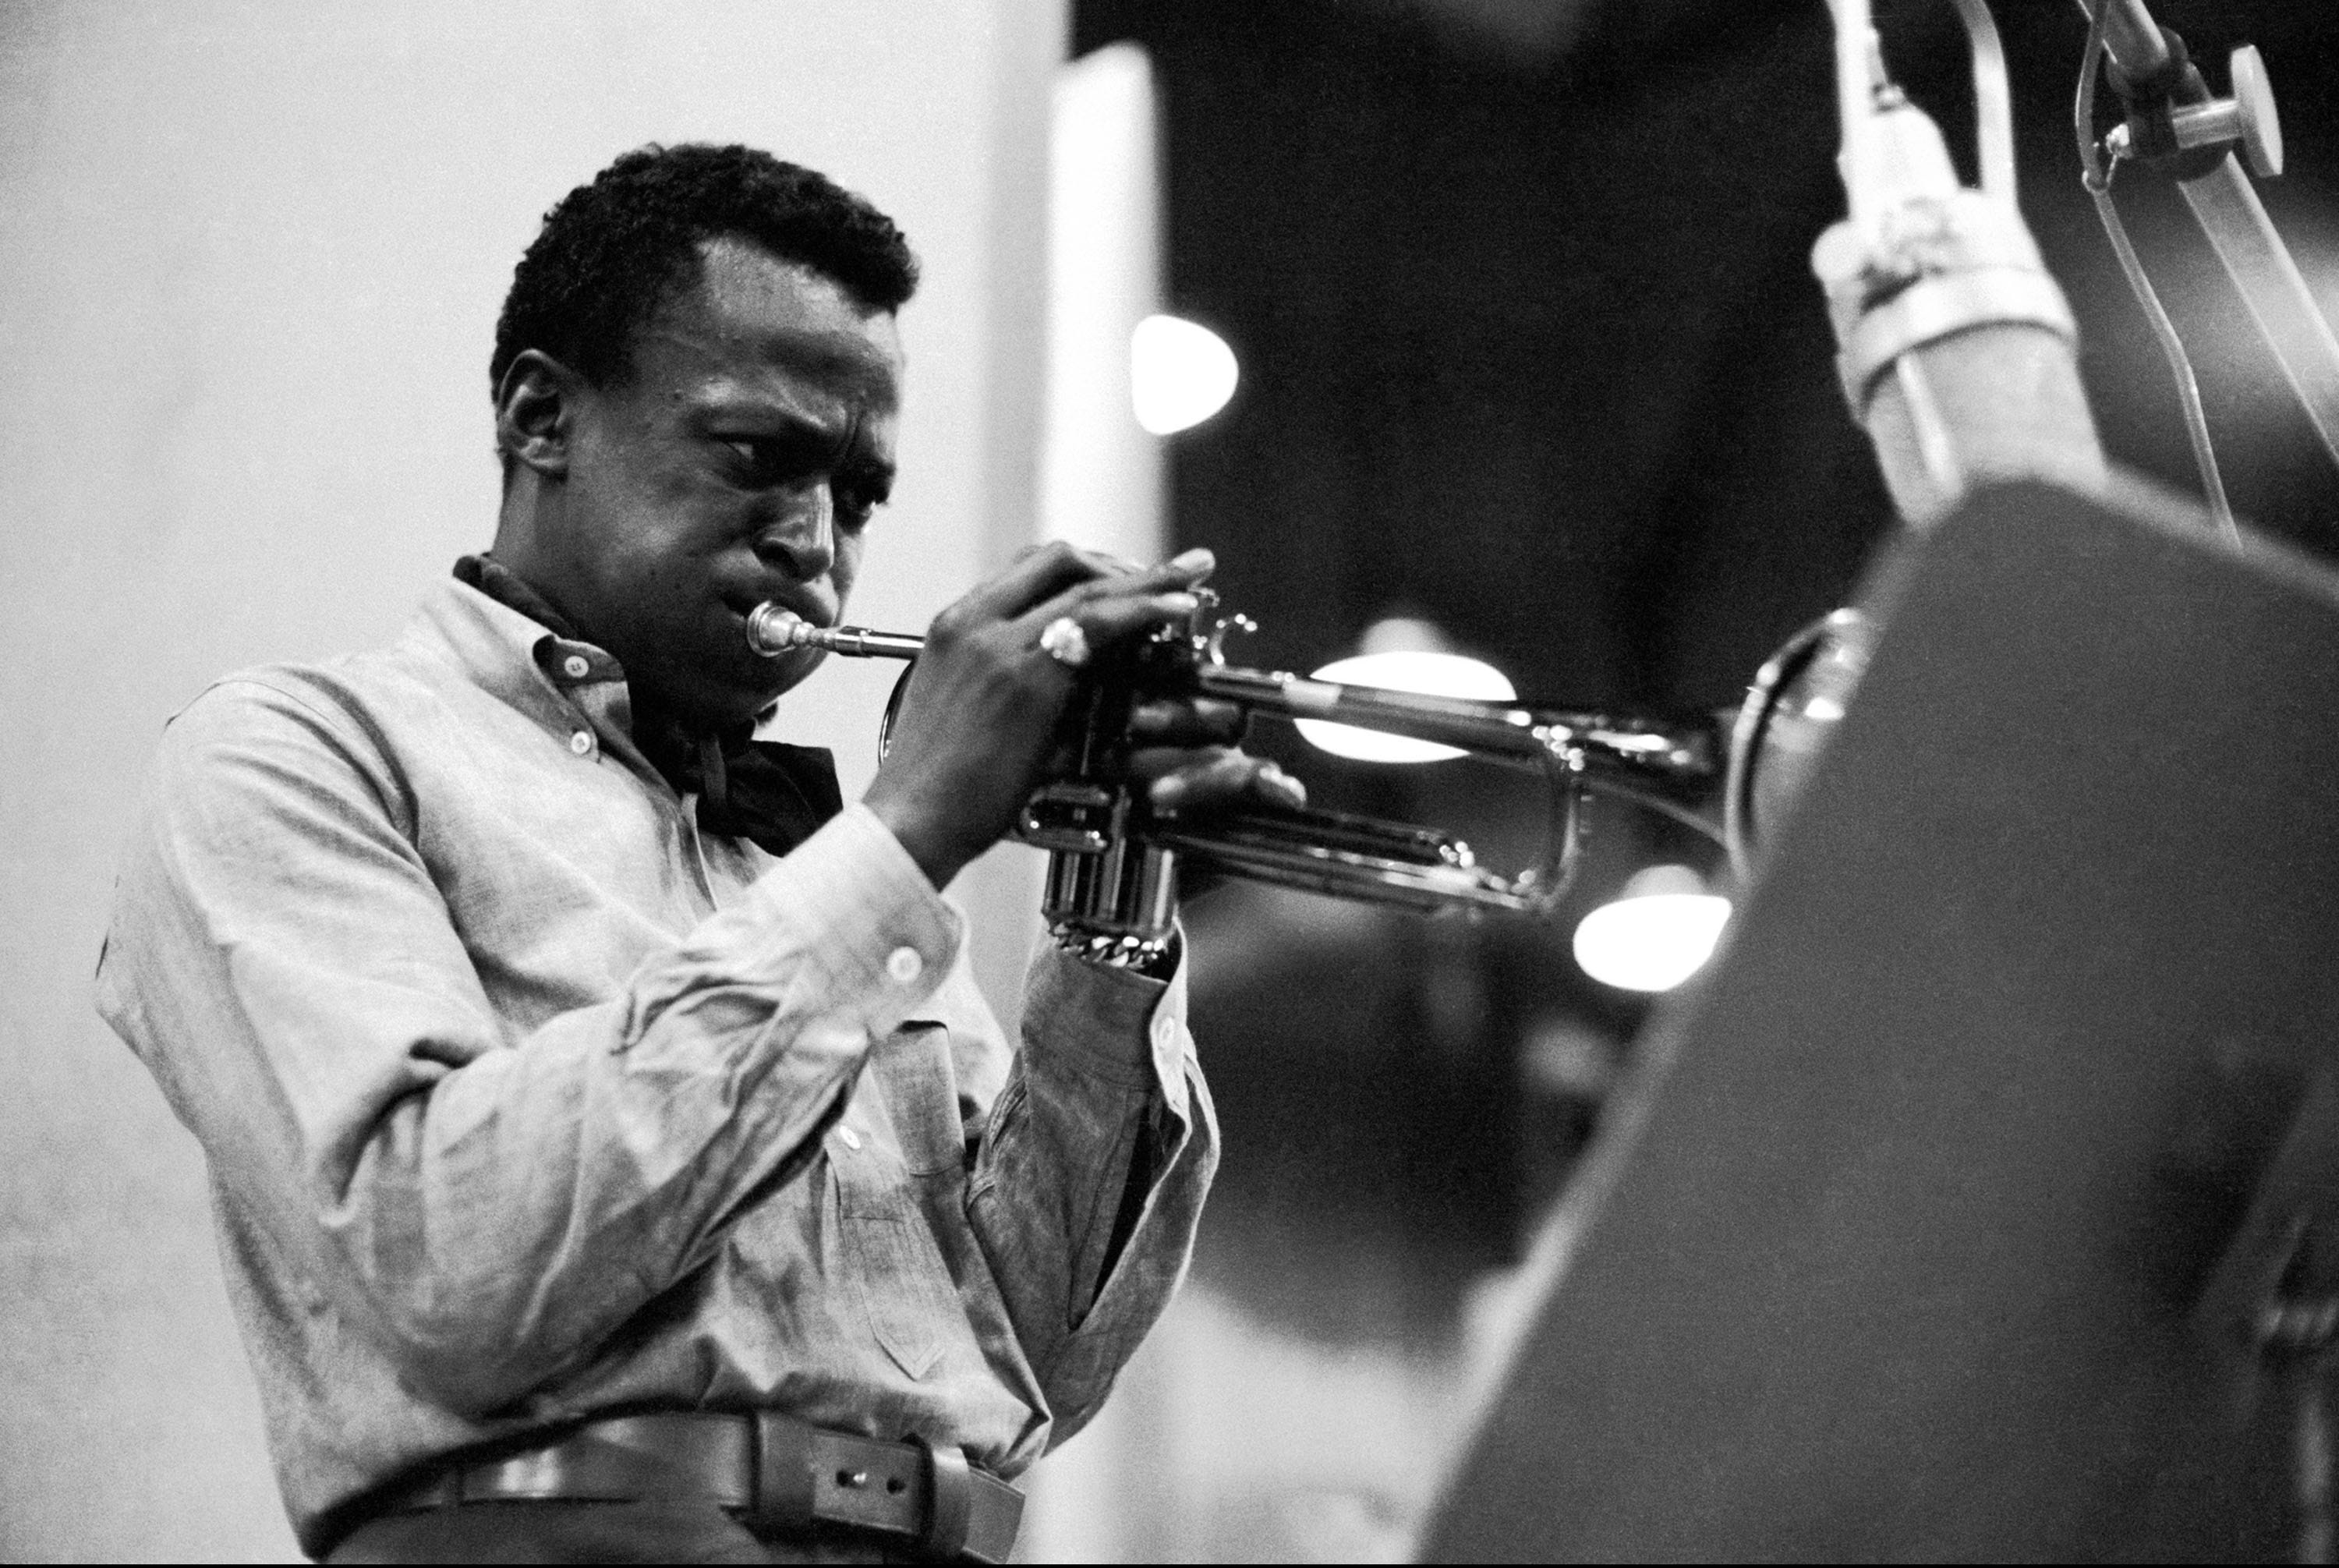 """In this publicity image released by Sony/Legacy Records, musician Miles Davis is shown during recording session in 1959 for """"Kind of Blue."""" His music is among to be made available in new high-resolution music downloads."""